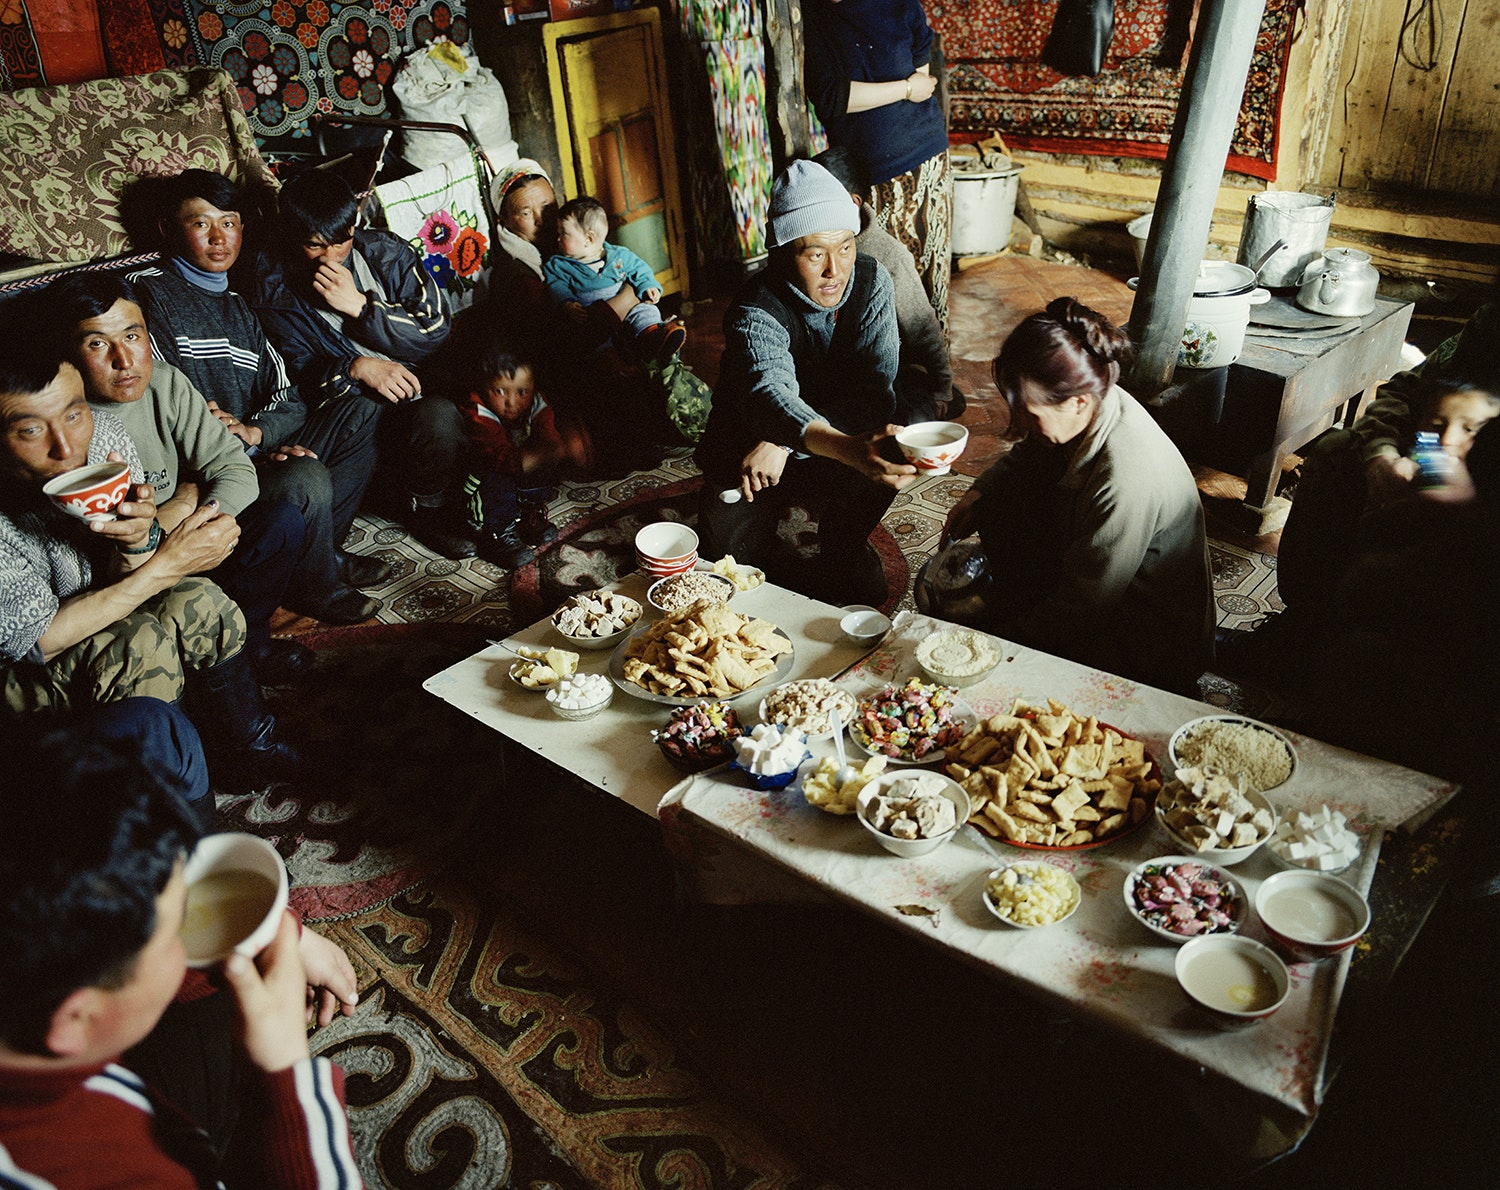 A nomadic family in Mongolia's Tsengel village gathers in their ger (portable tent) for a meal. The people in this area, near the Kazakhstan border, are known for practicing the ancient sport of eagle hunting.